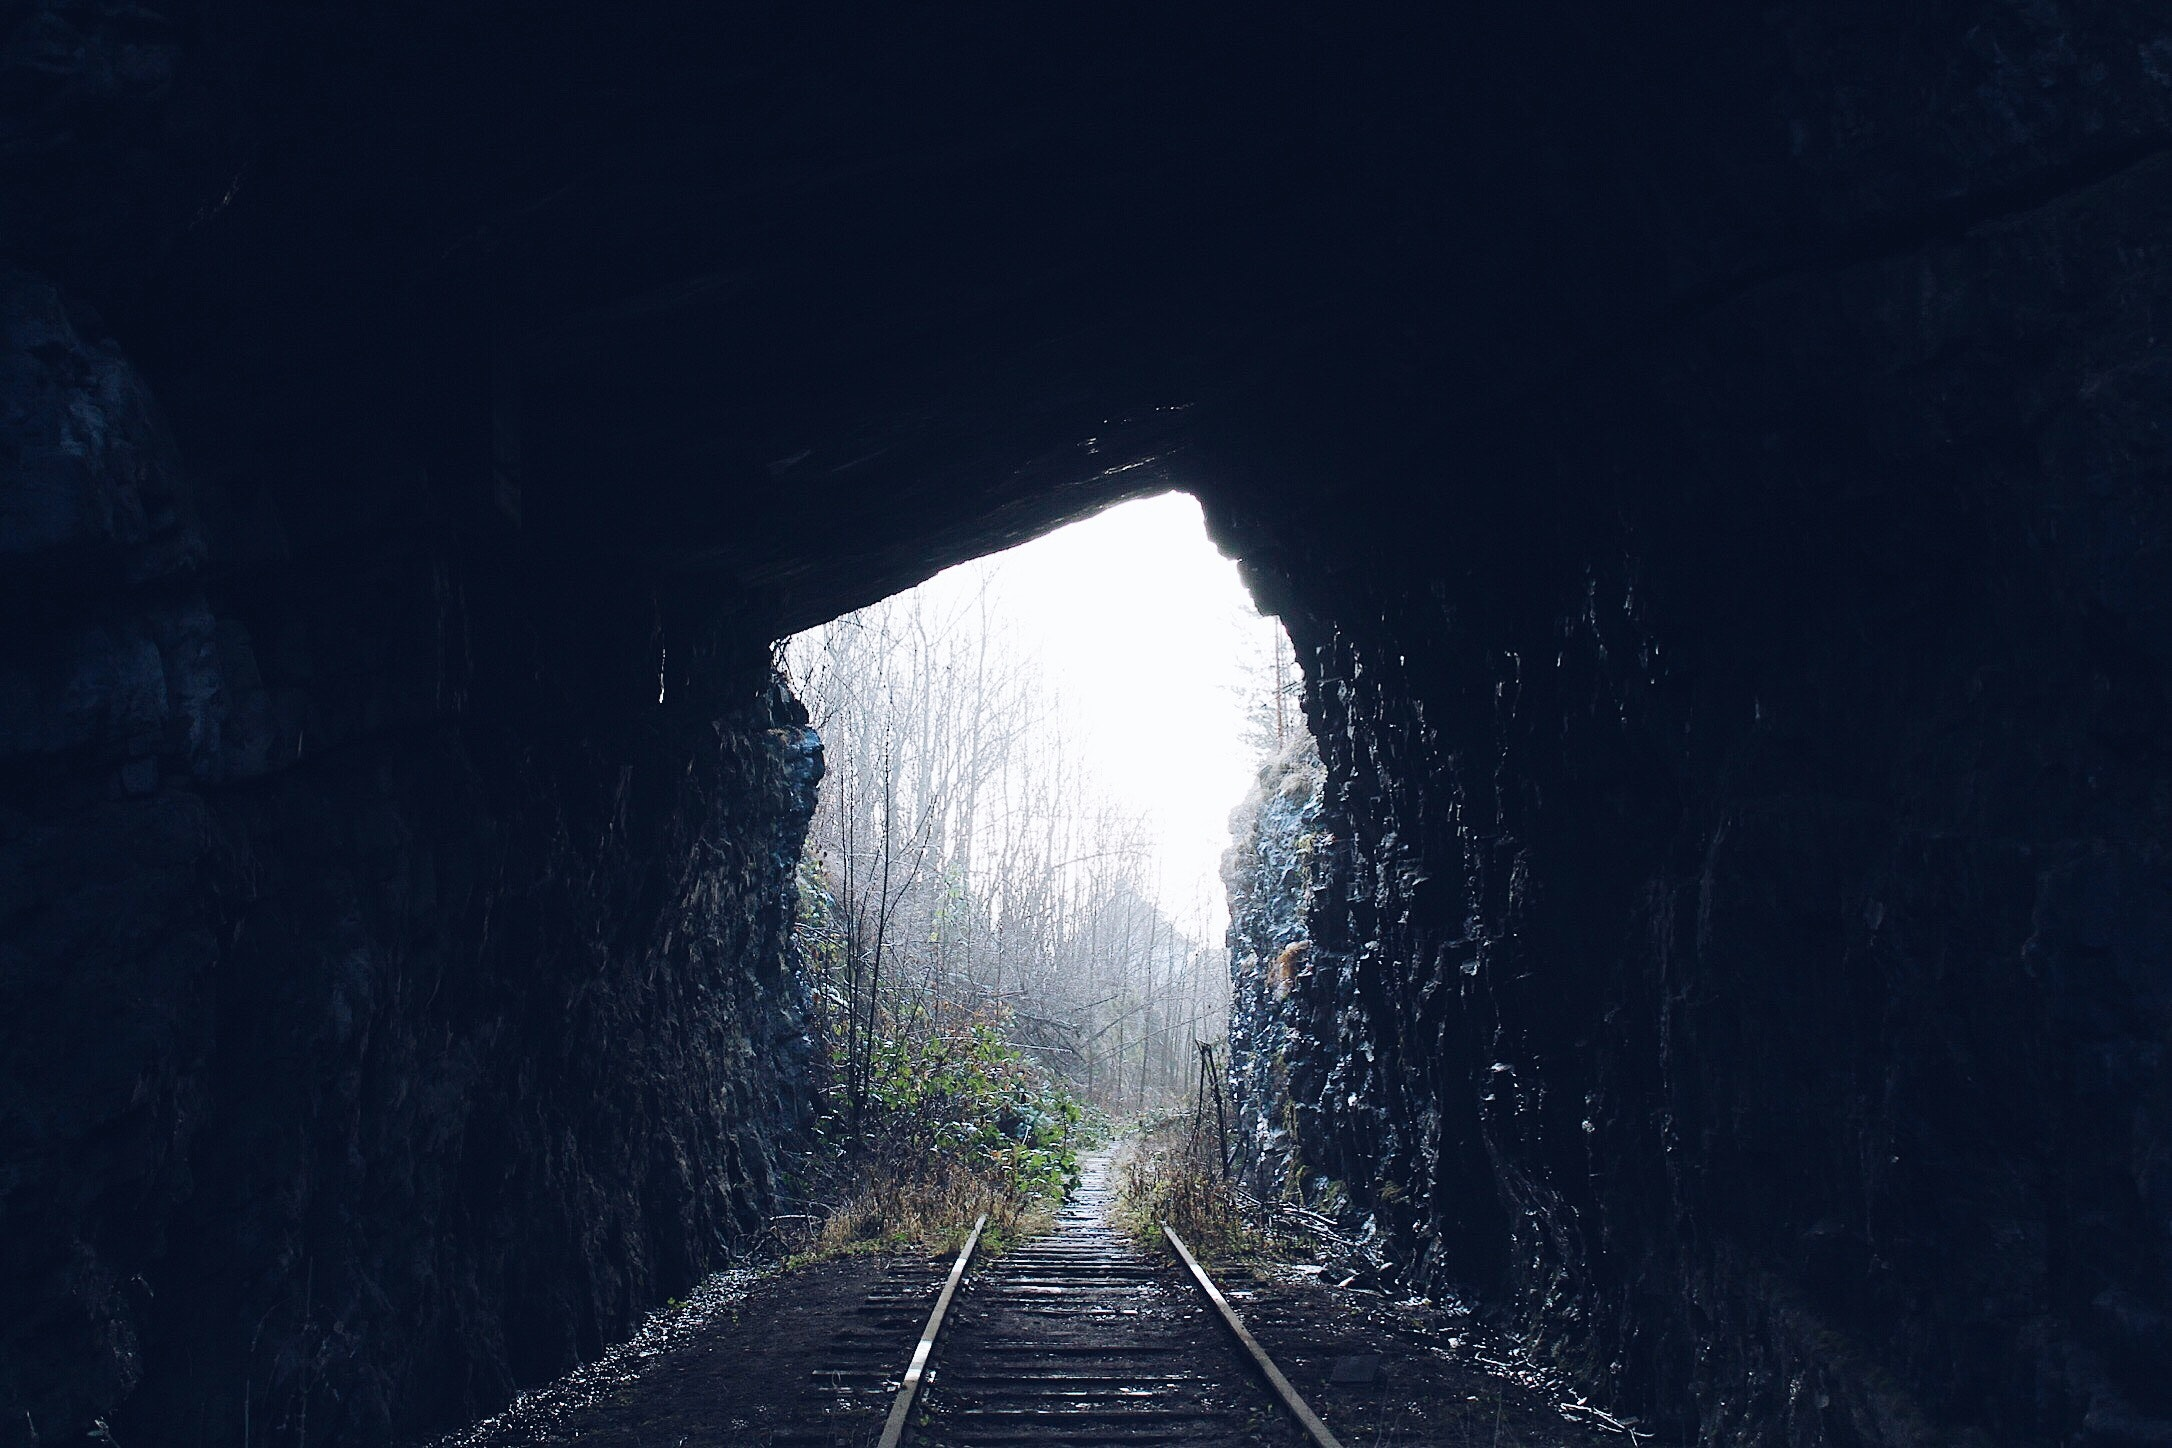 View of Tunnel, Stone wall, Tube, Trees, Travel, HQ Photo